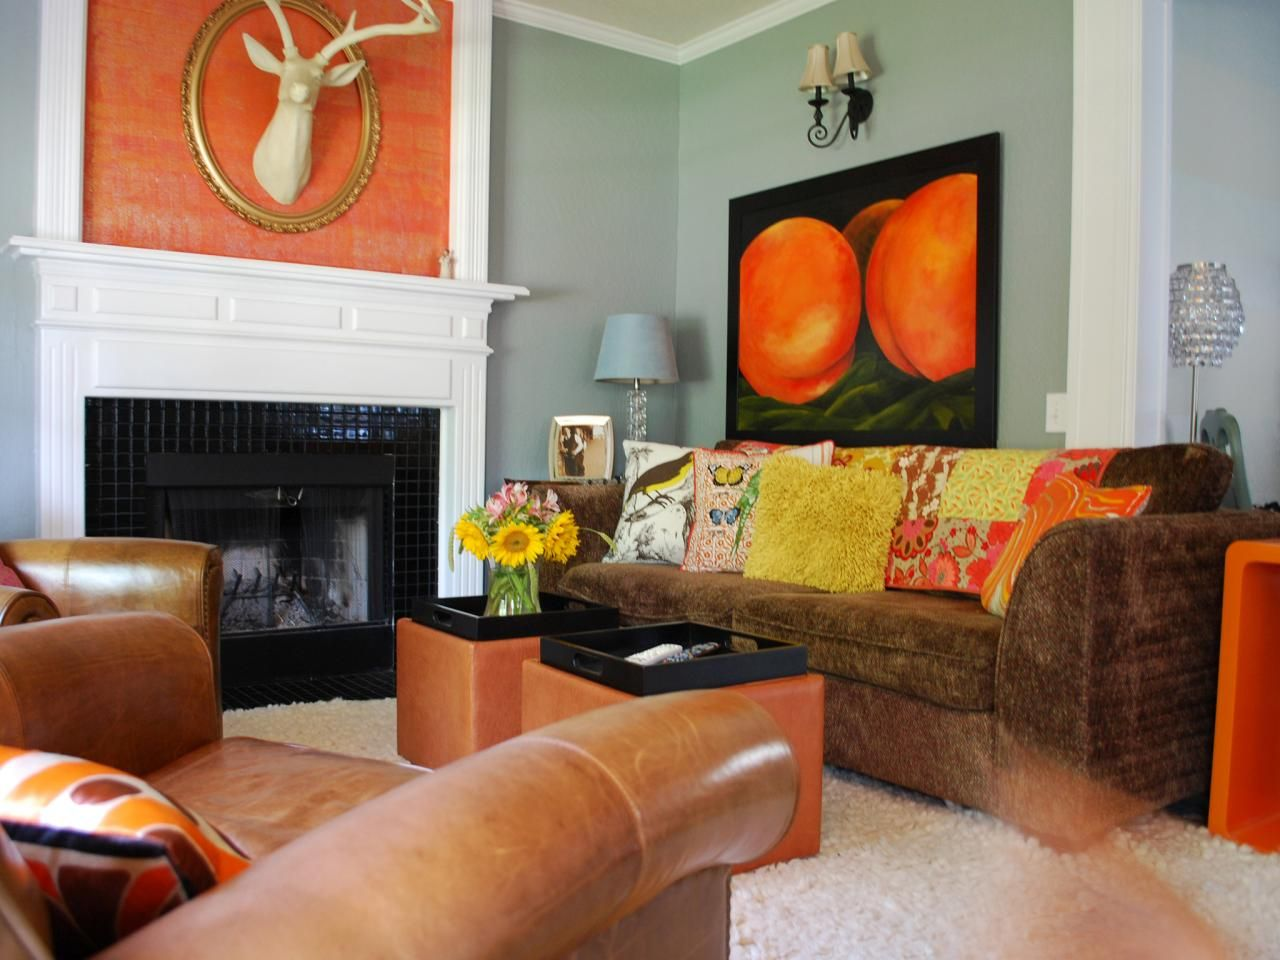 Living Room New Living Room Colors 1000 images about near split complement color schemes on pinterest paint colors and wheels